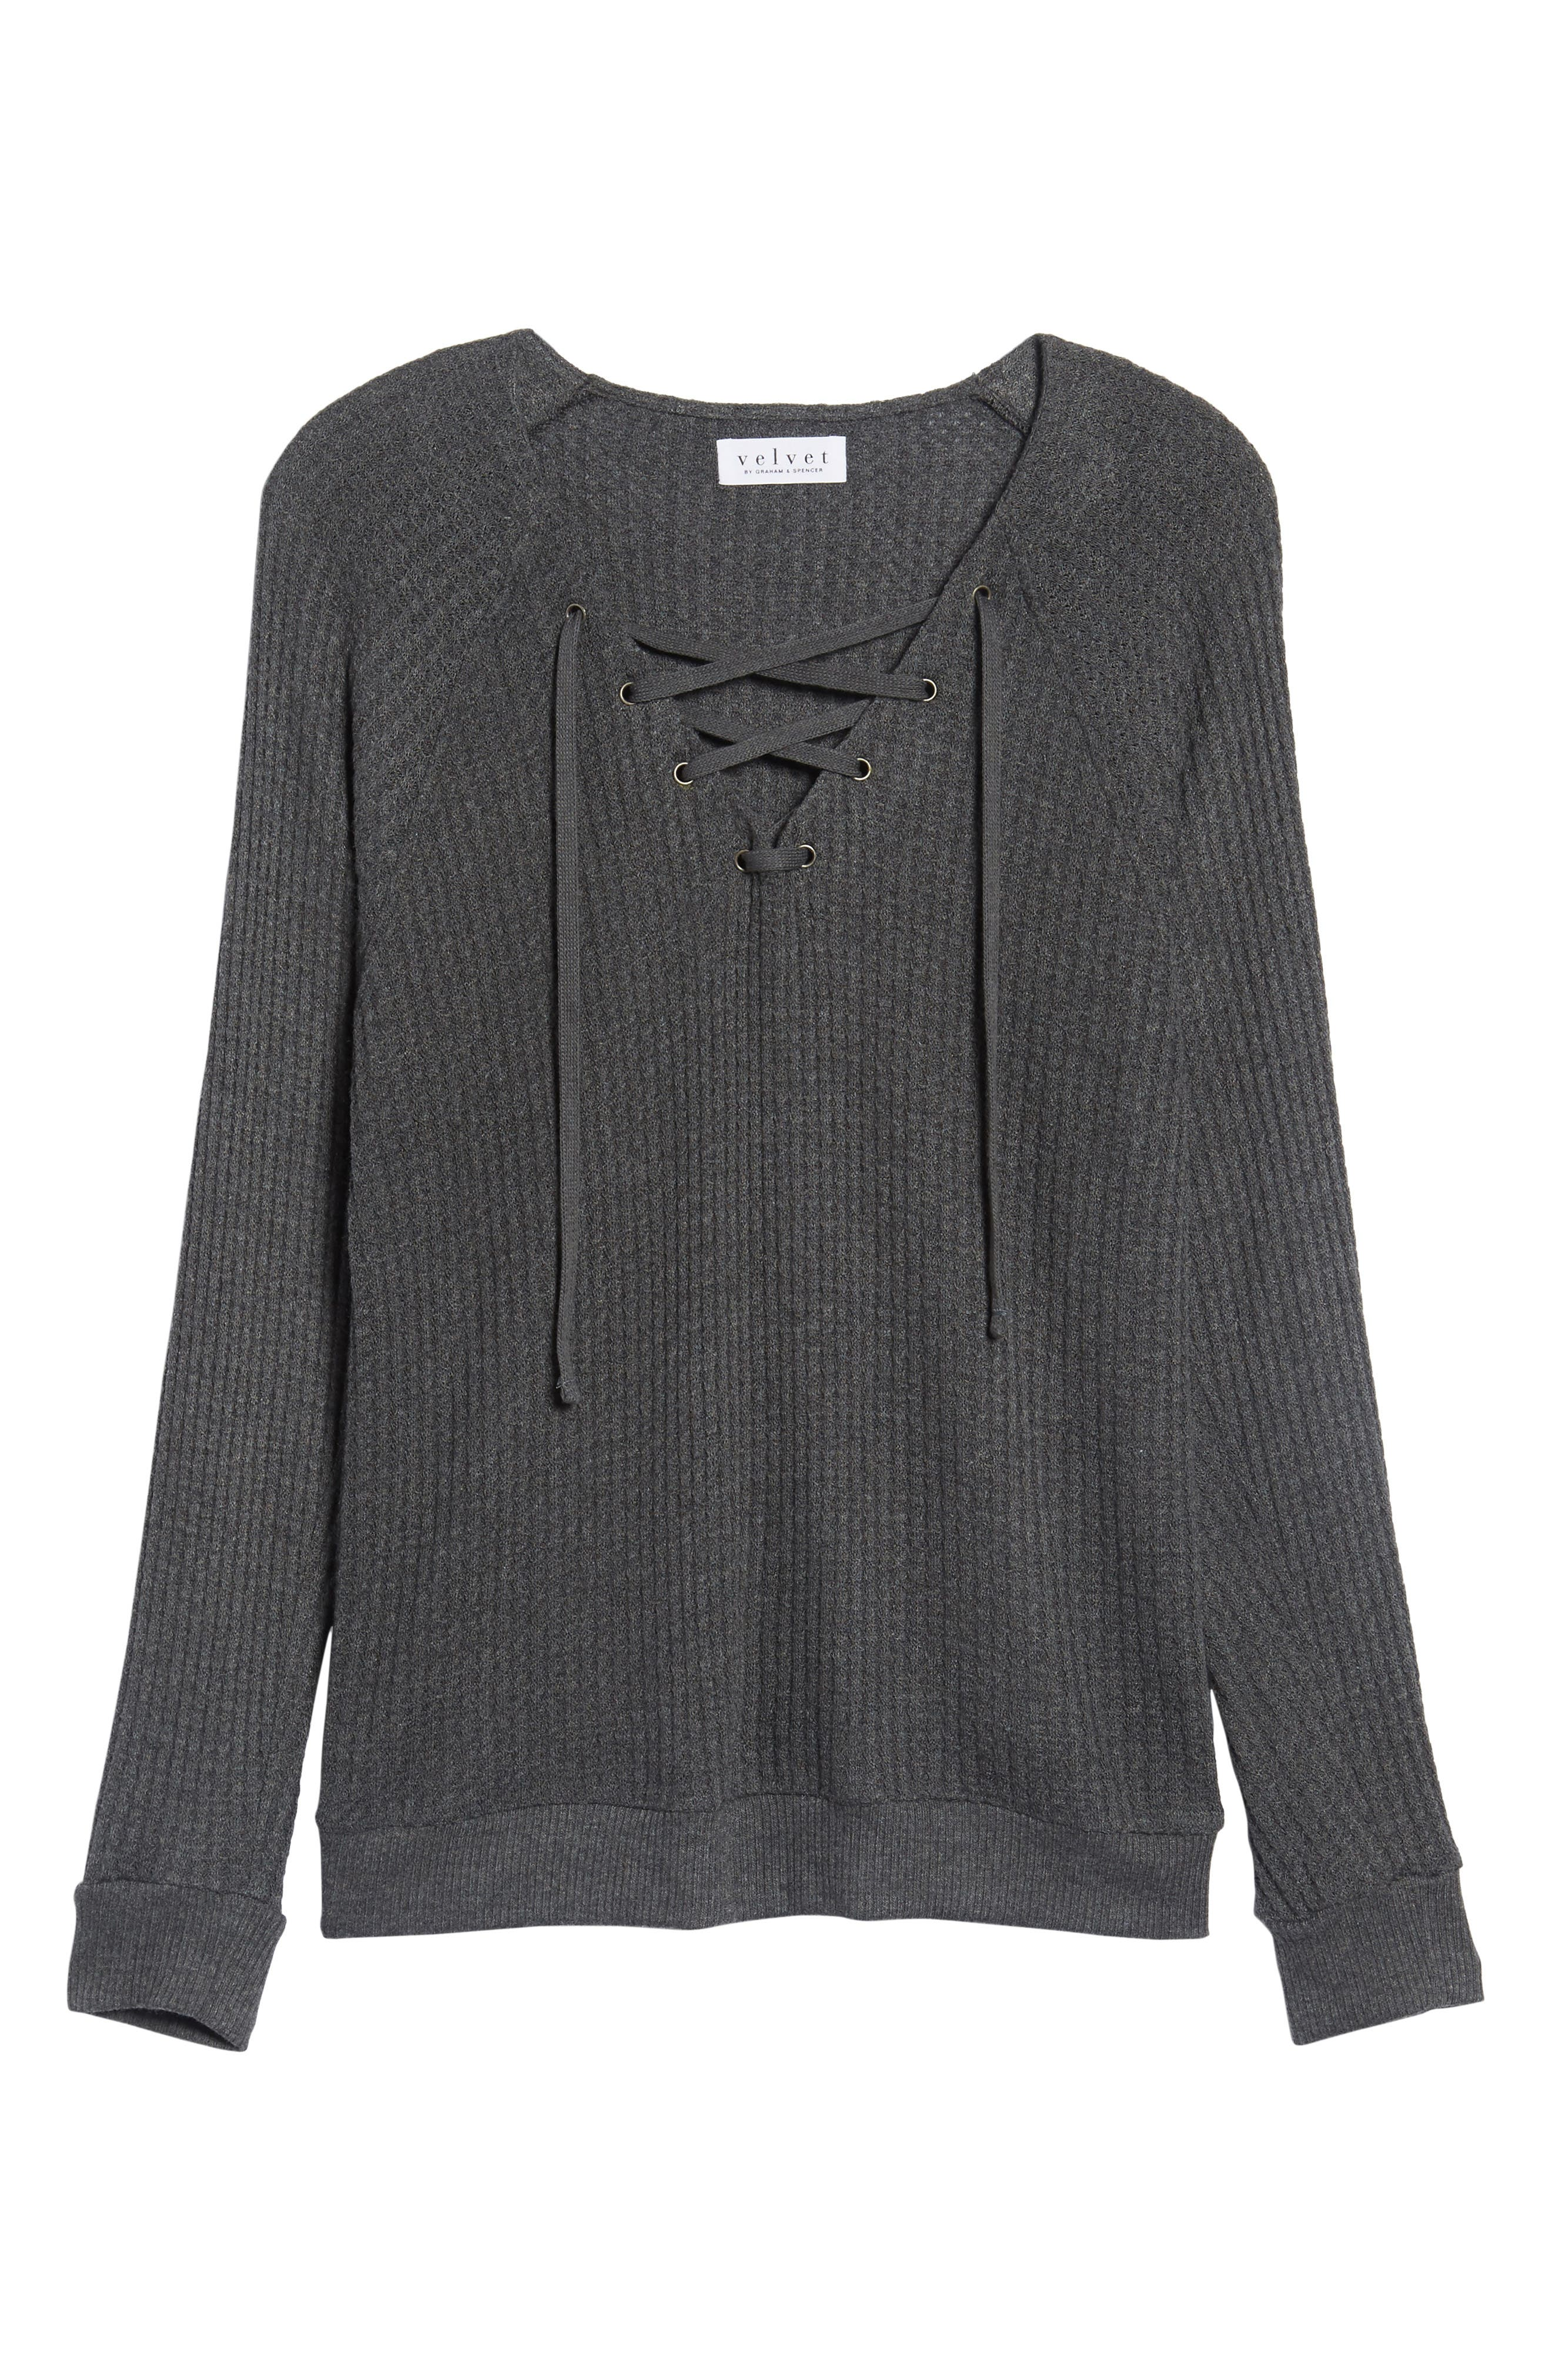 Thermal Knit Lace-Up Top,                             Alternate thumbnail 6, color,                             026